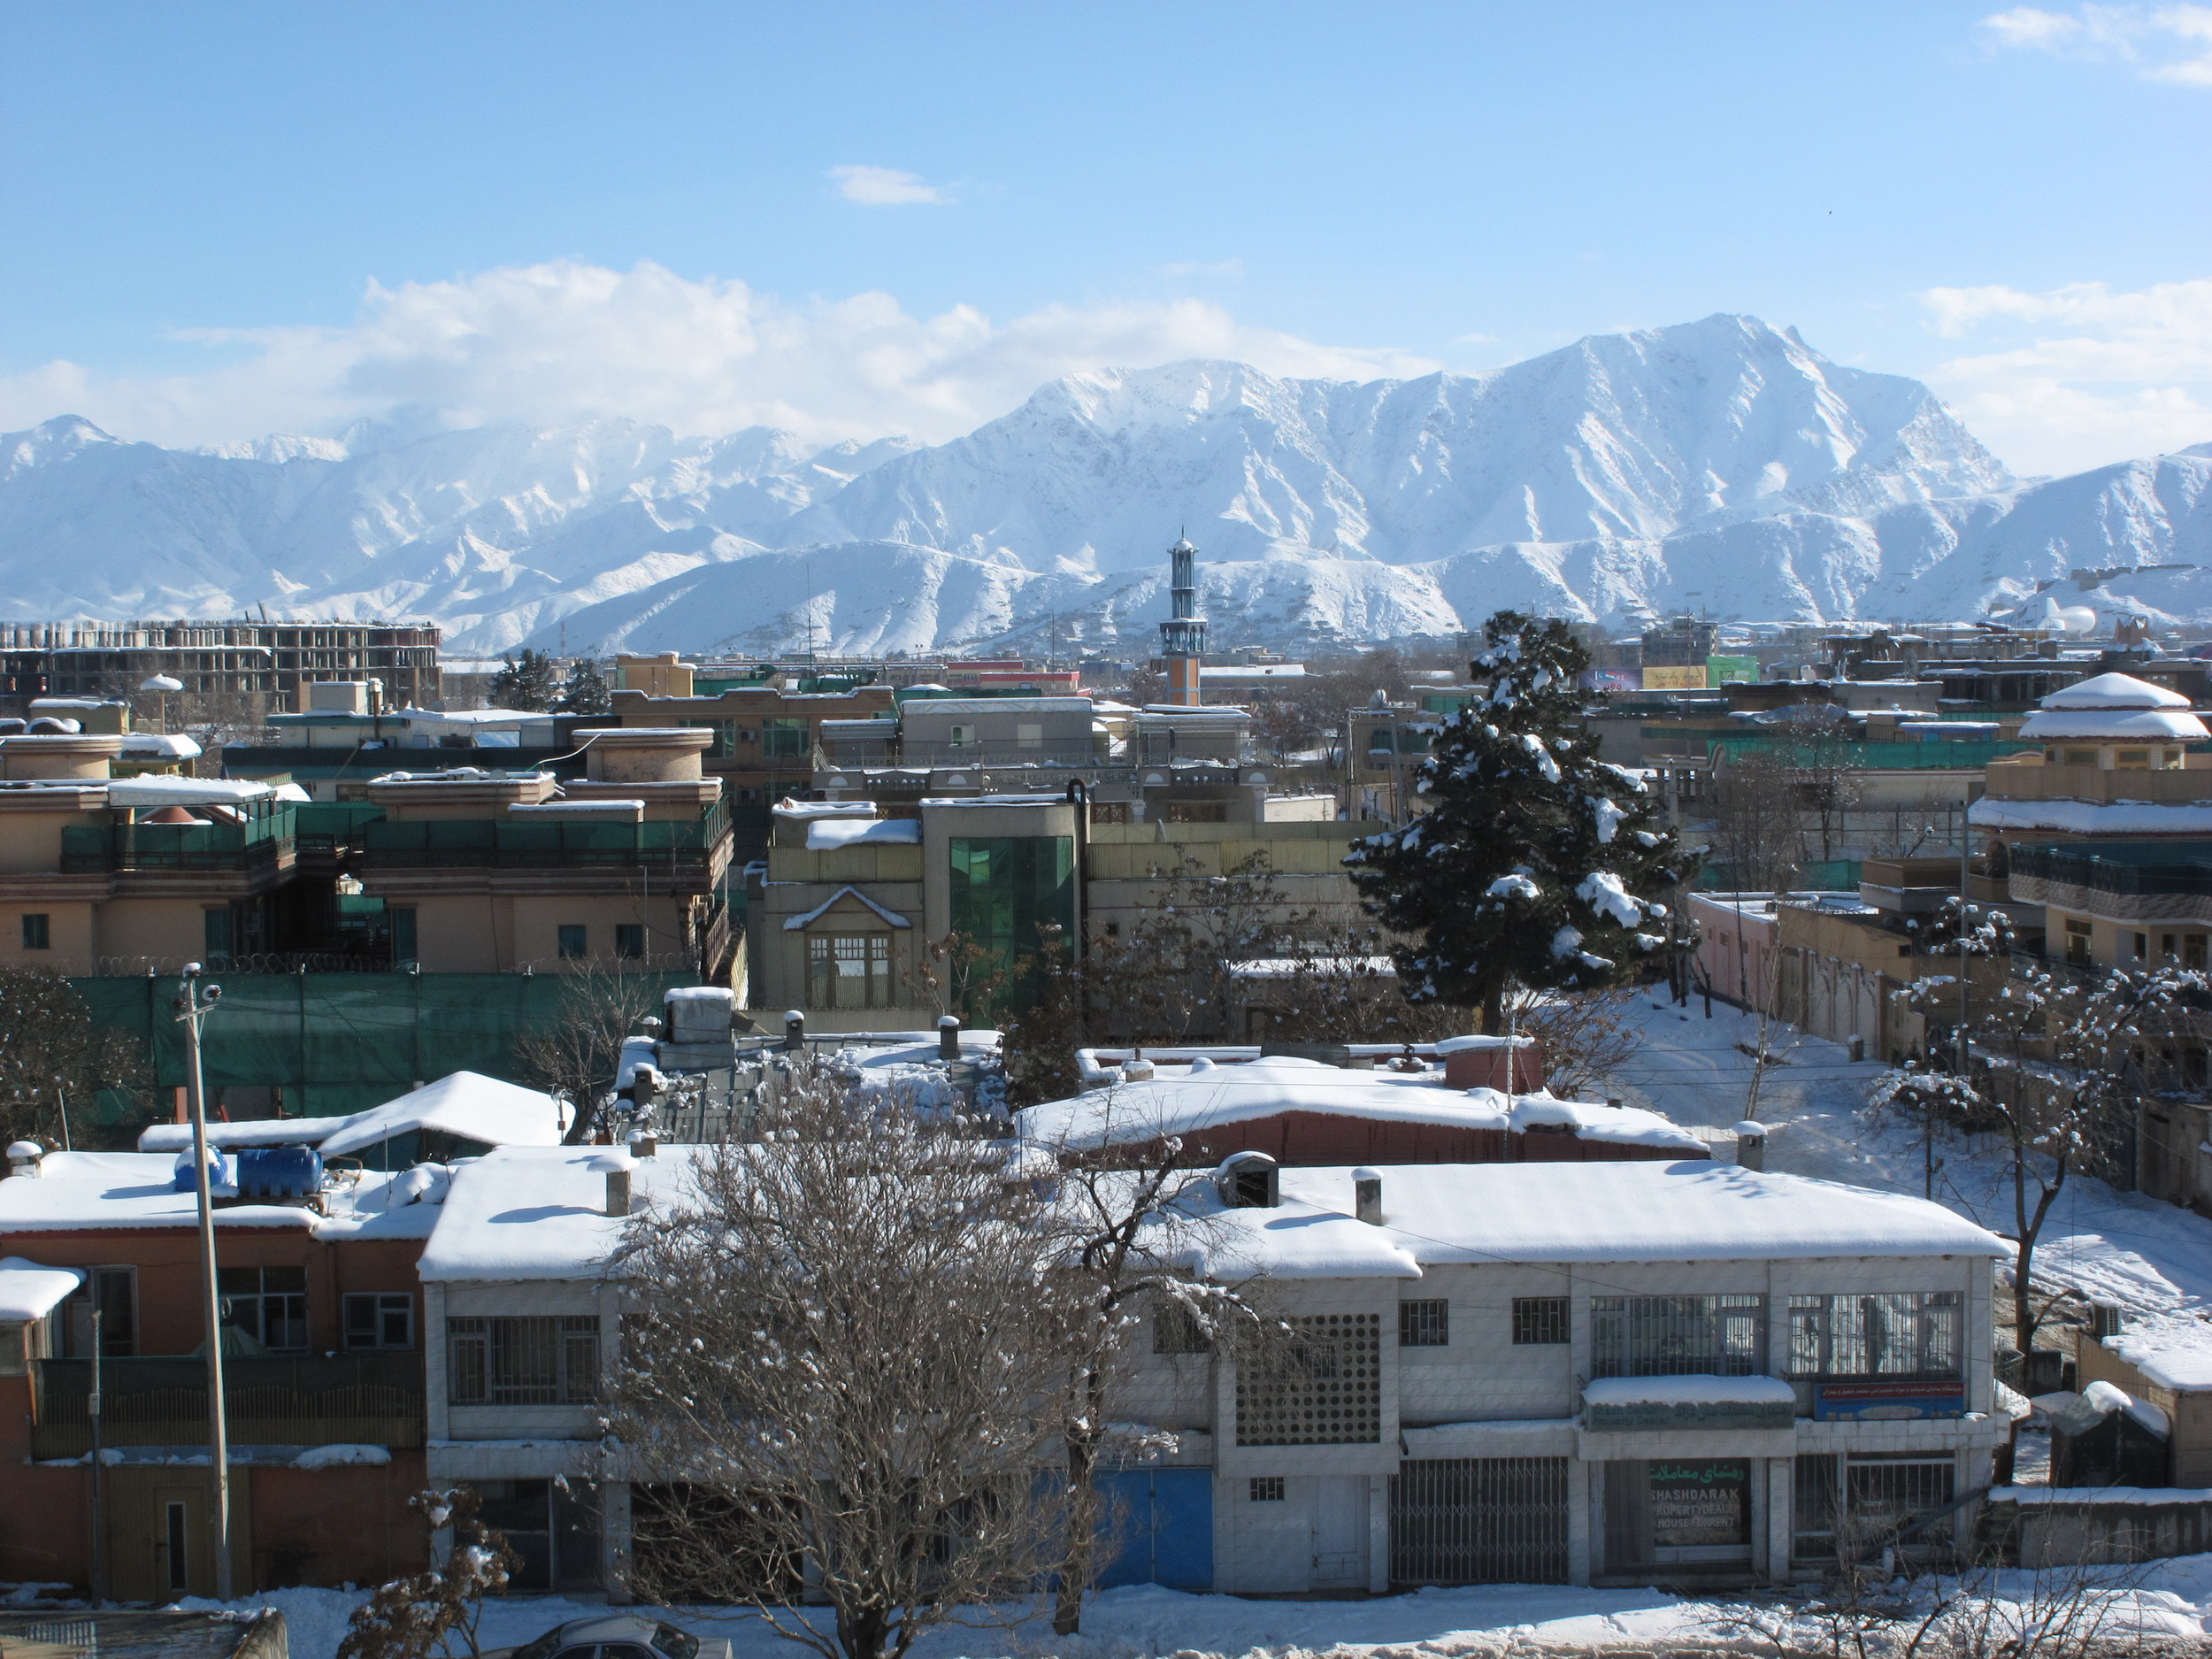 Rooftop view, during the coldest winter in 25 years, Kabul, Afghanistan